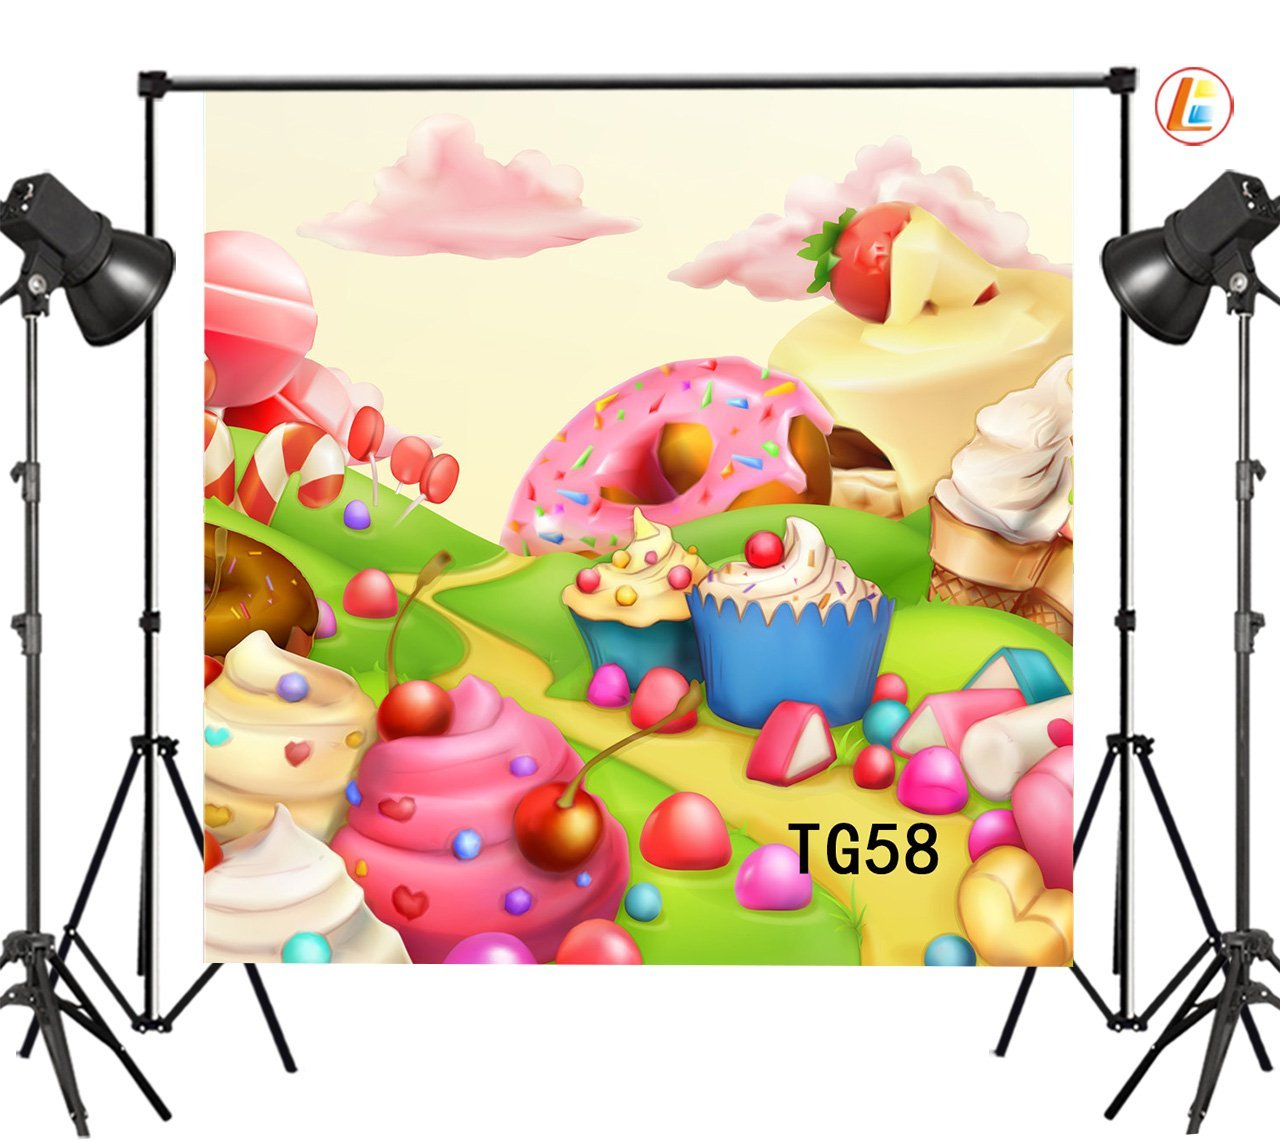 pink cake table Candy clouds photo studio background Vinyl cloth High quality Computer print wall photo backdrop